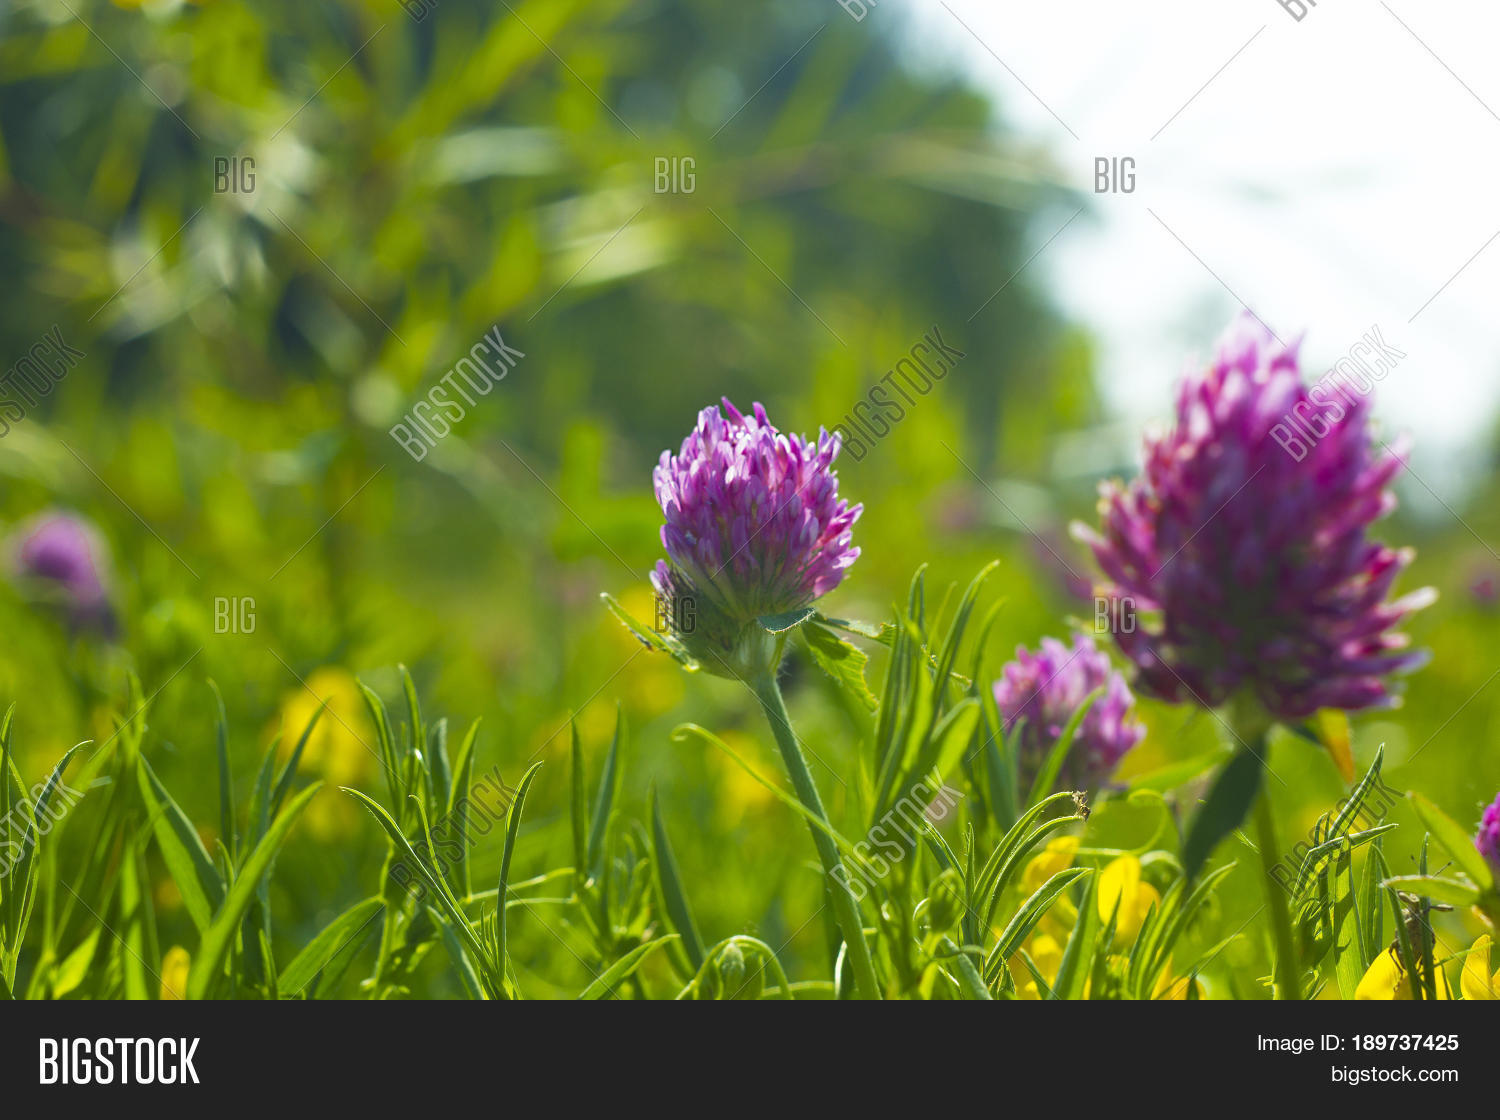 Summer field yellow pink flowers image photo bigstock summer field with yellow and pink flowers clover wild meadow pink clover flower in green mightylinksfo